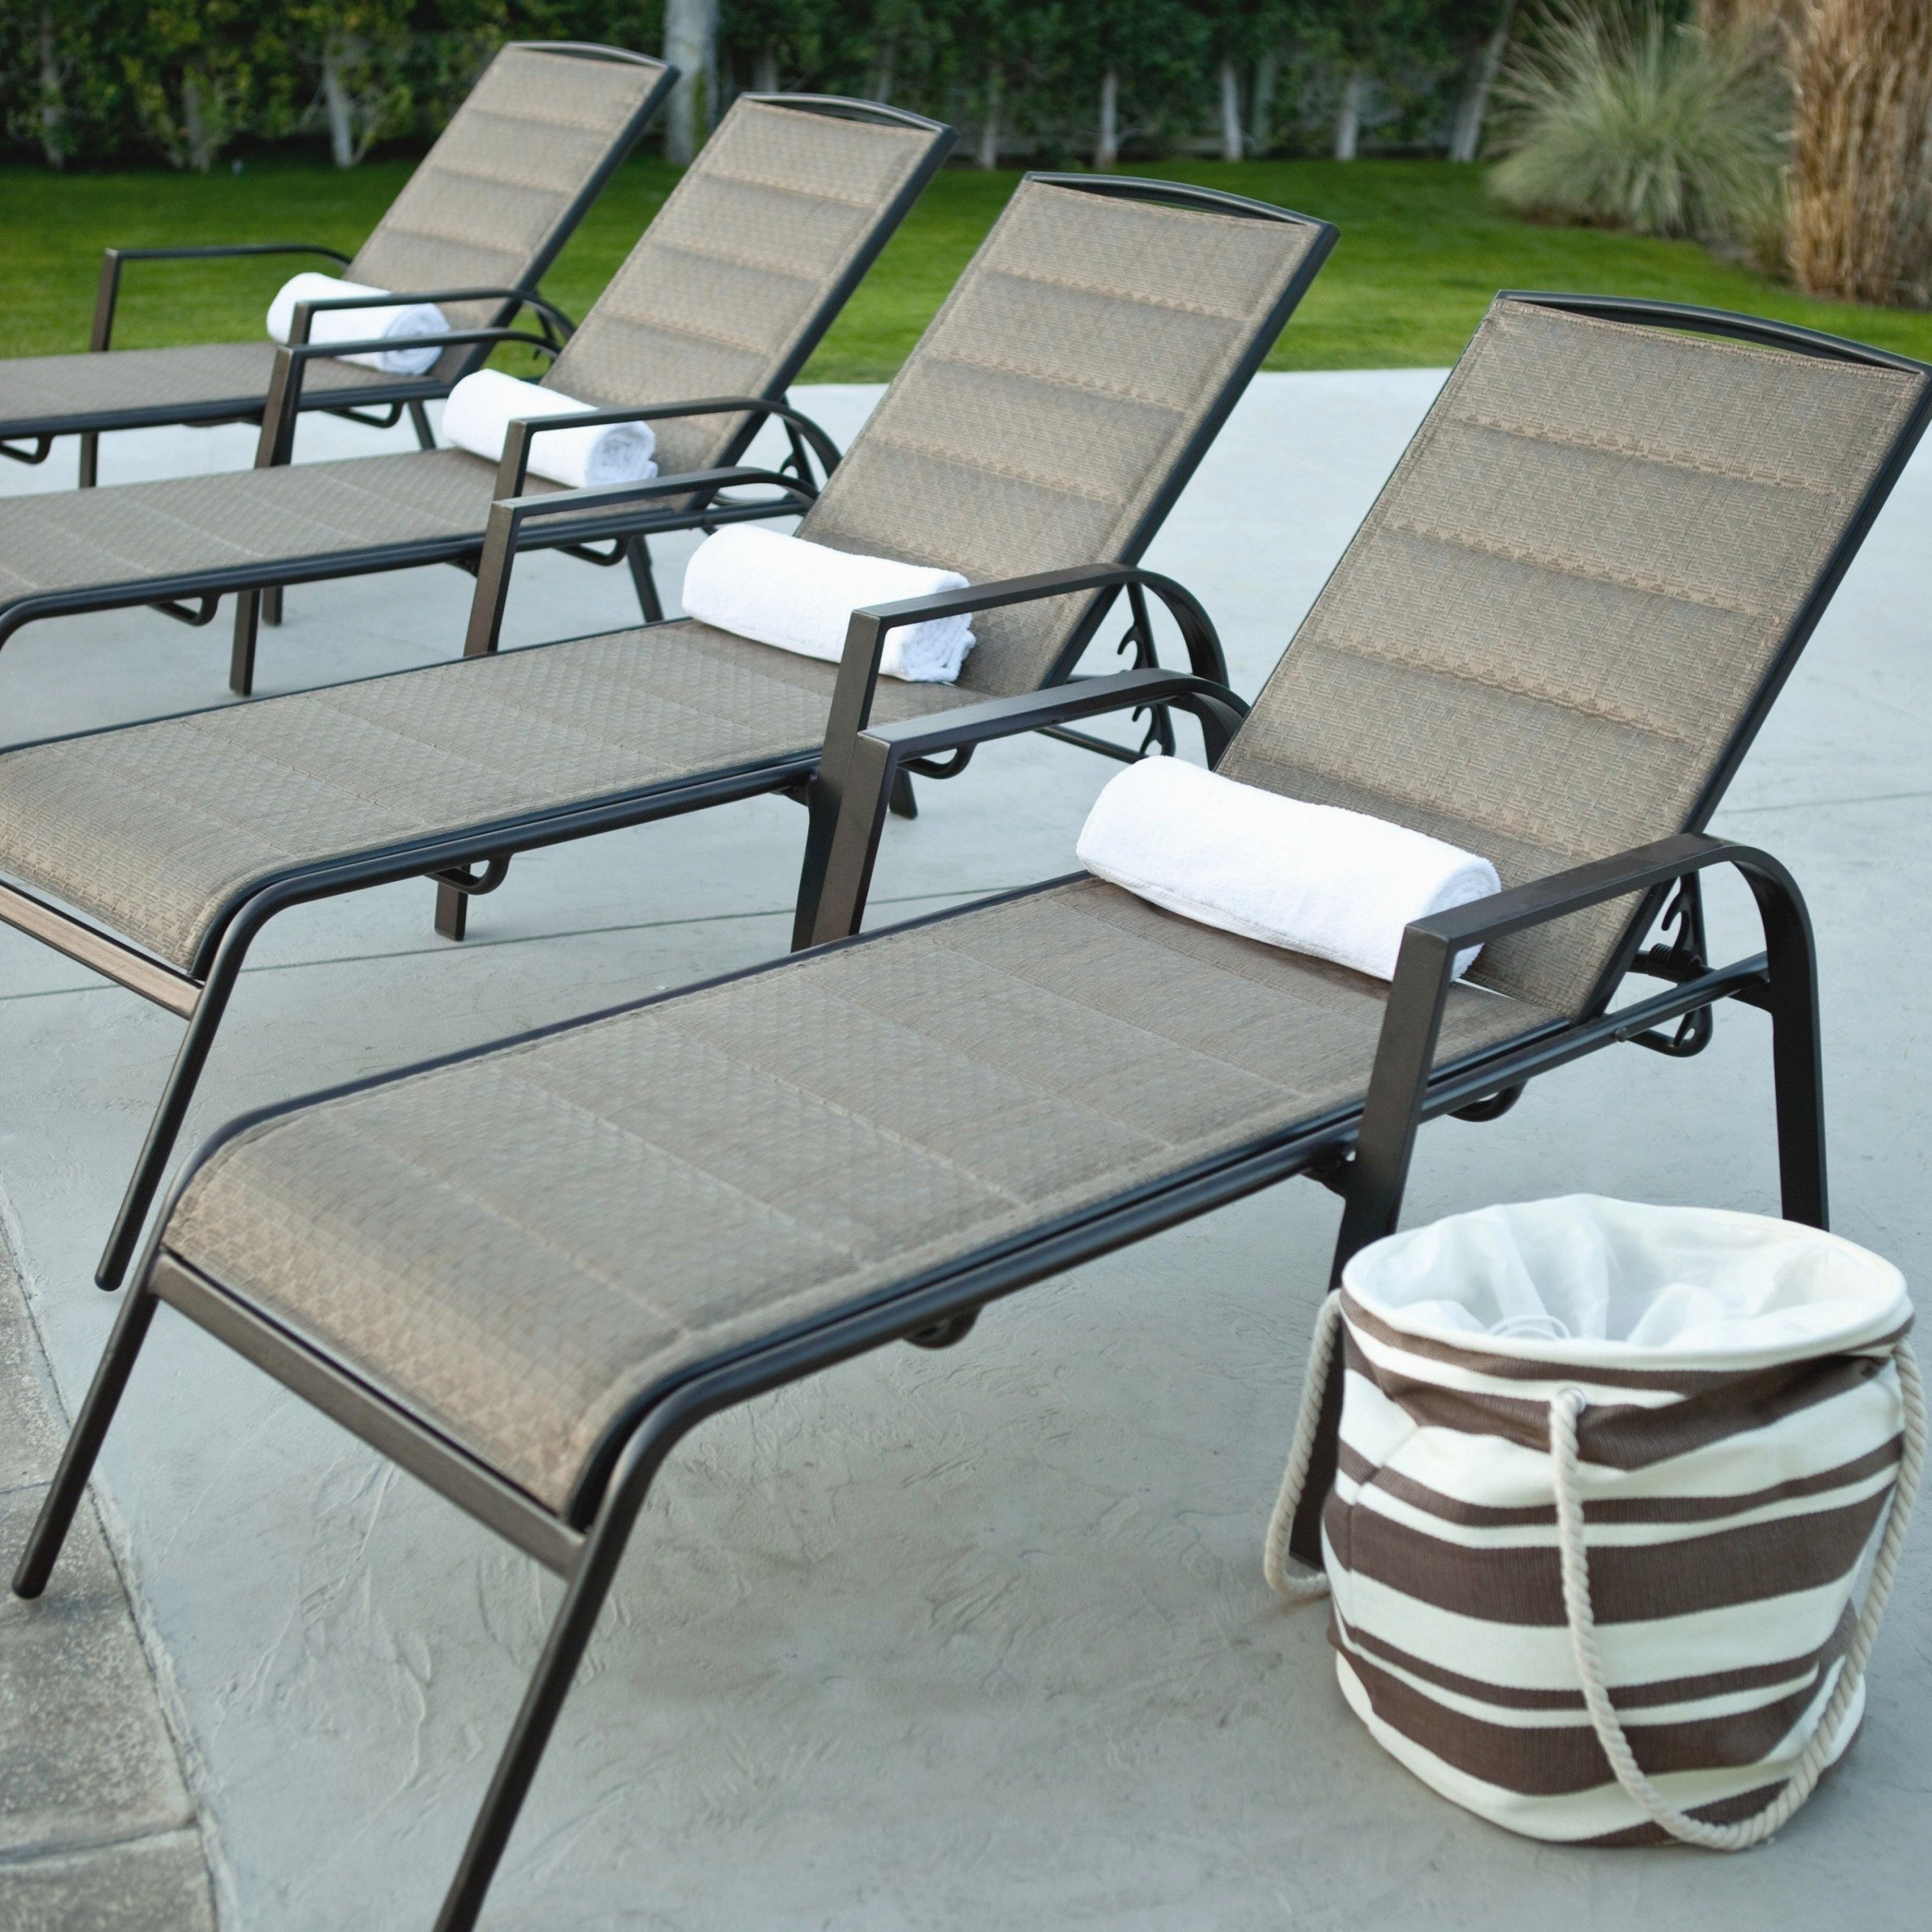 Most Recent Outdoor Chaise Lounge Chairs Under 100 Modern Fresh Ideas Pertaining To Outdoor Chaise Lounges (View 15 of 15)